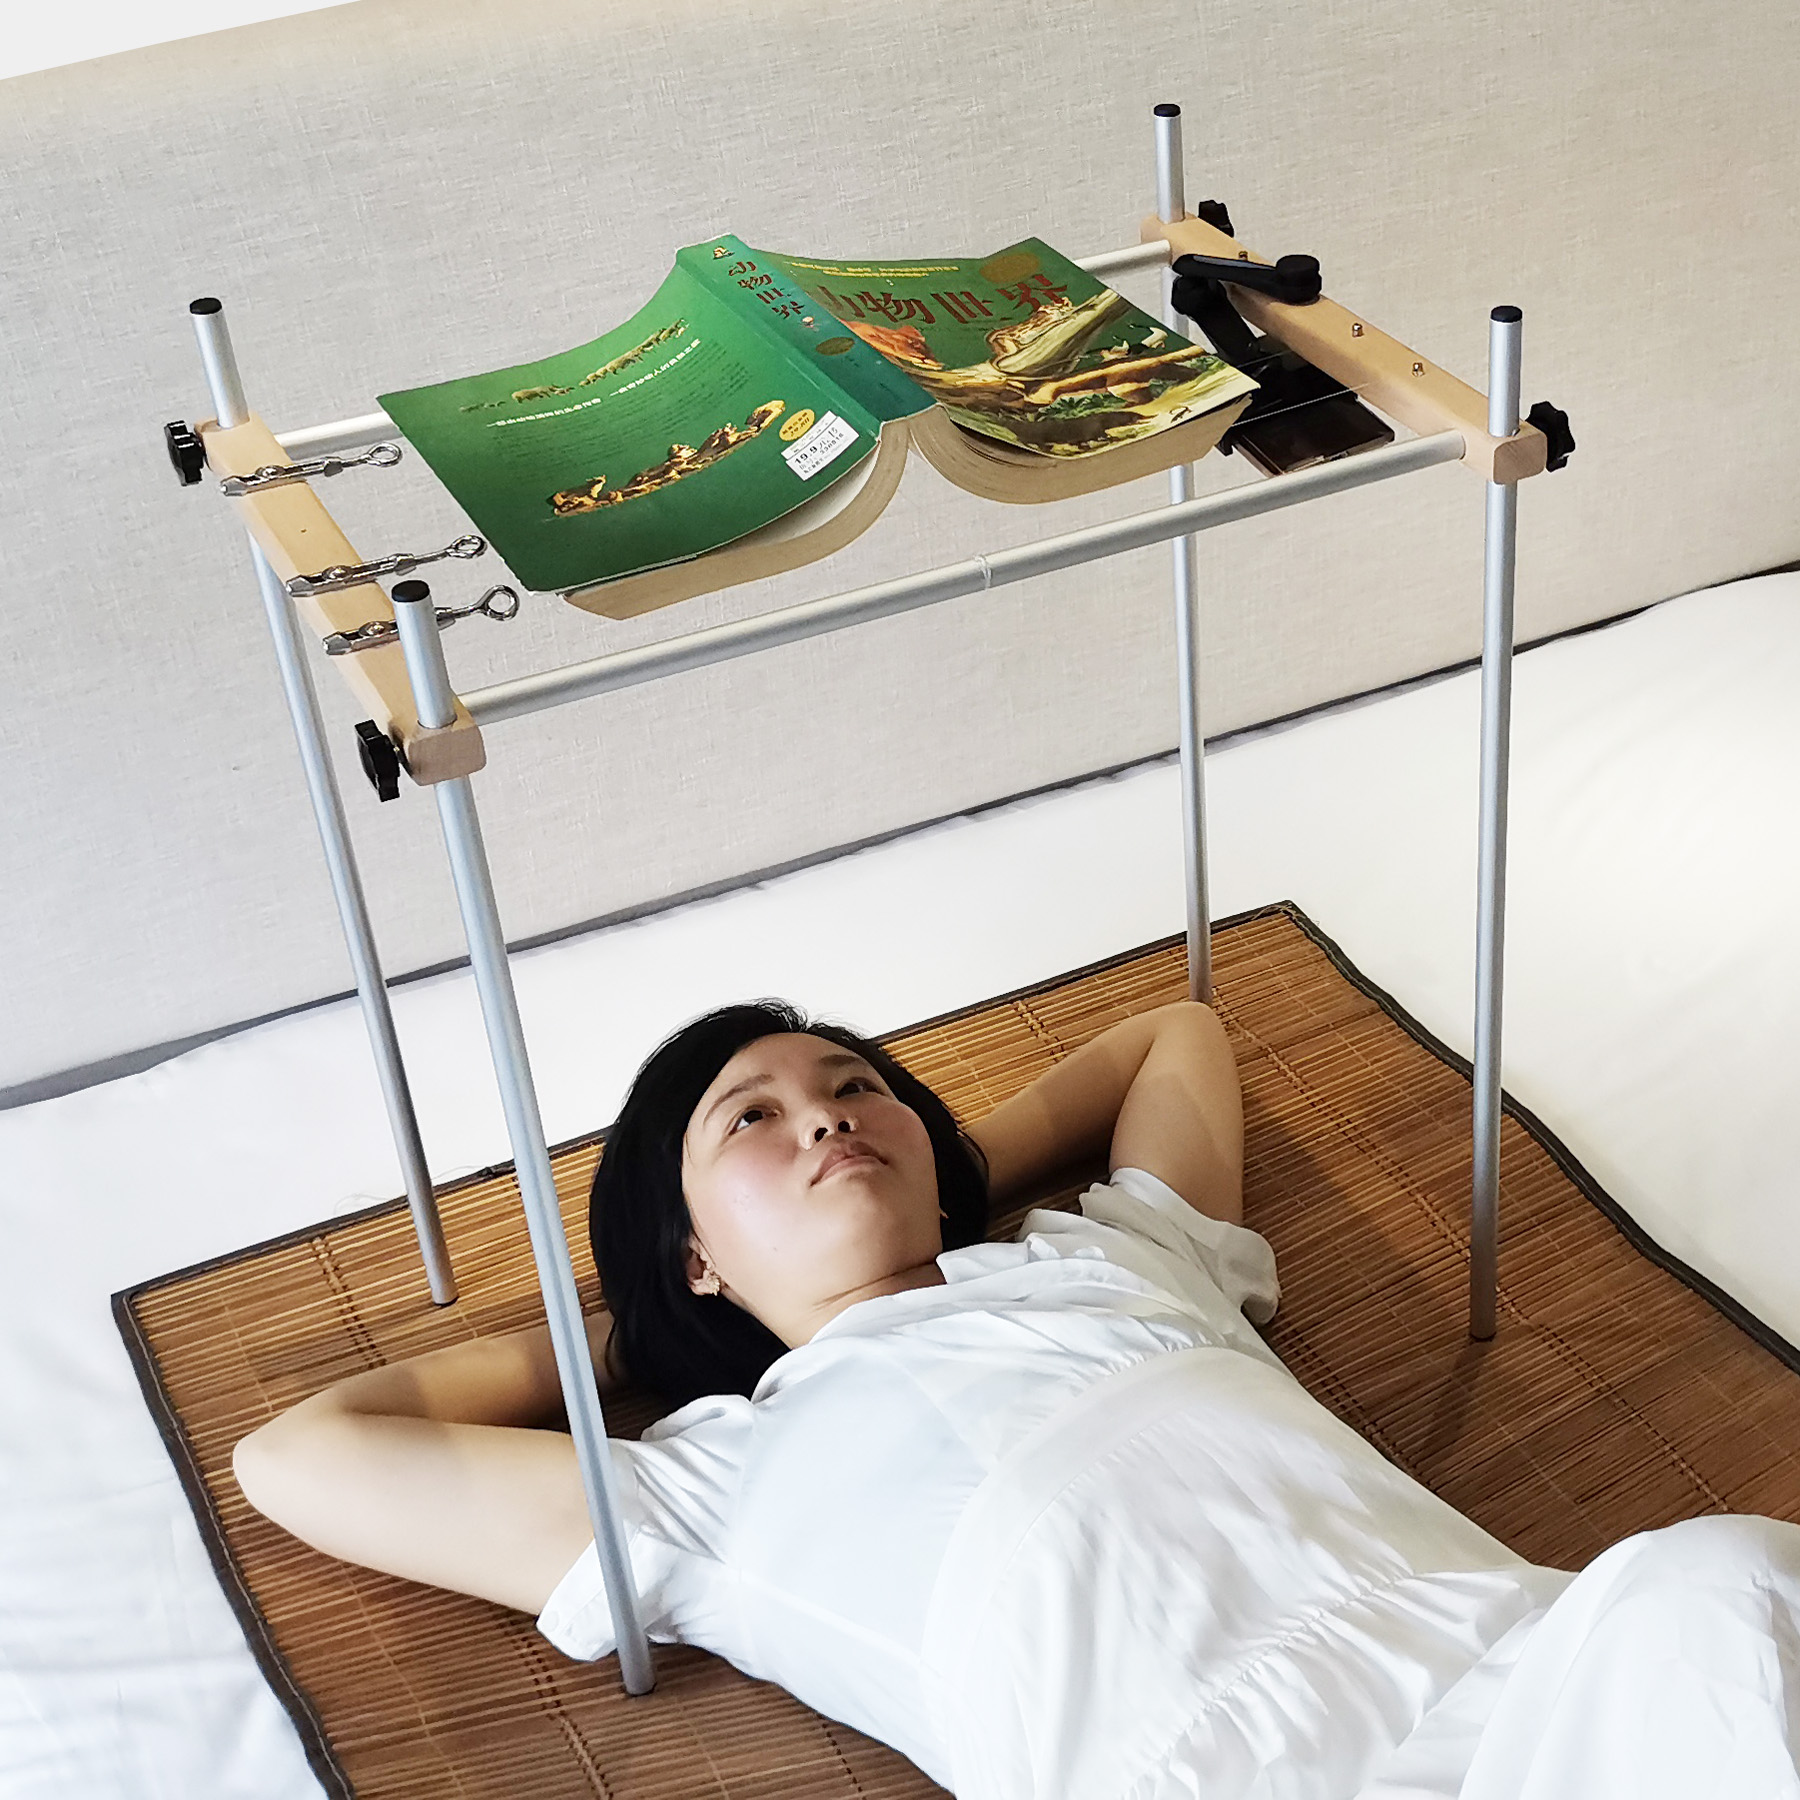 reading stand bed supine book stand lying down reading book rests book holders bracket for ipad tablet stand lazy person